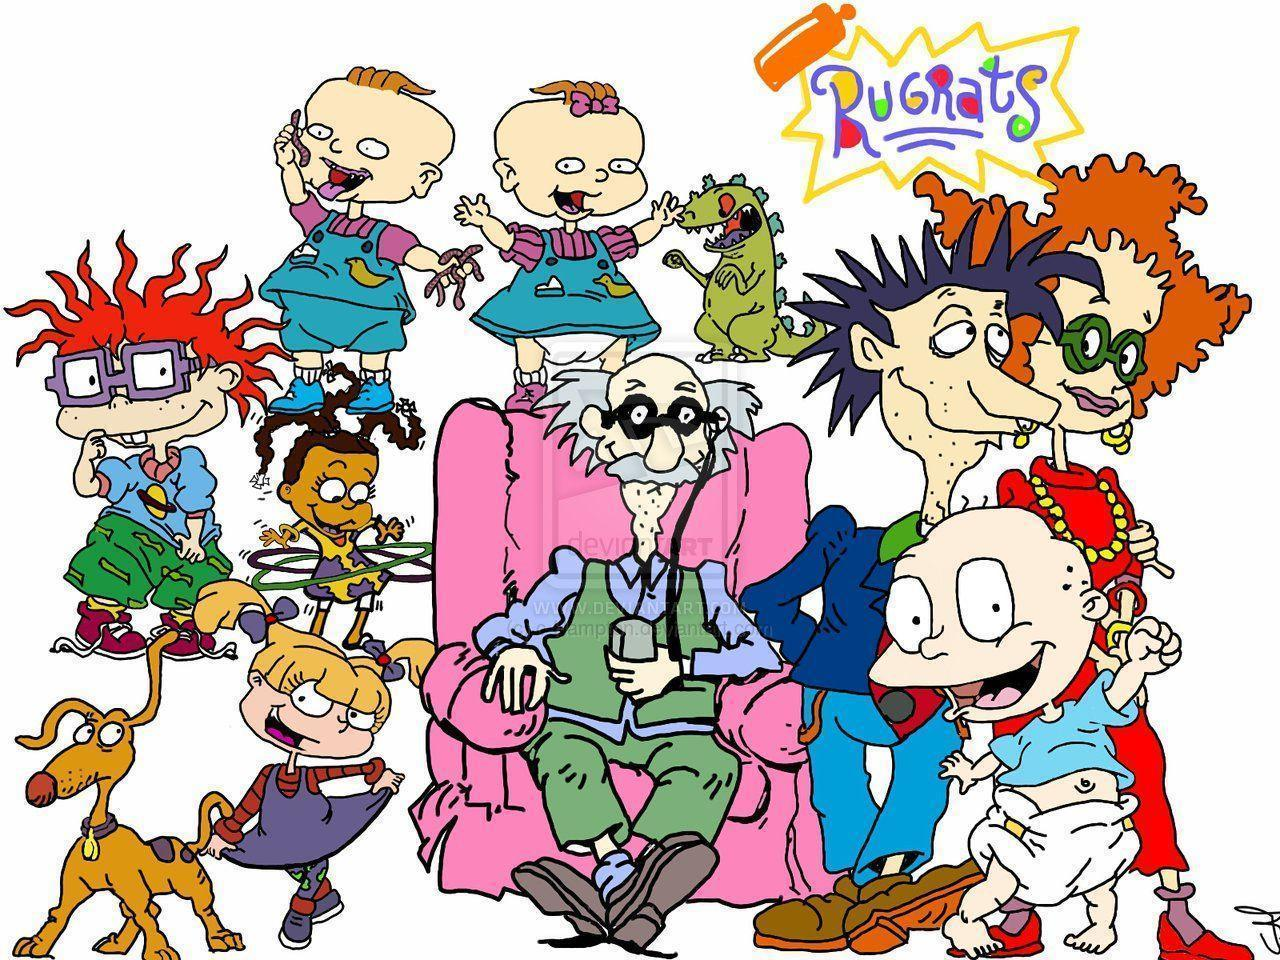 45 best images about Rugrats on Pinterest | Rugrats, Pickles and ...